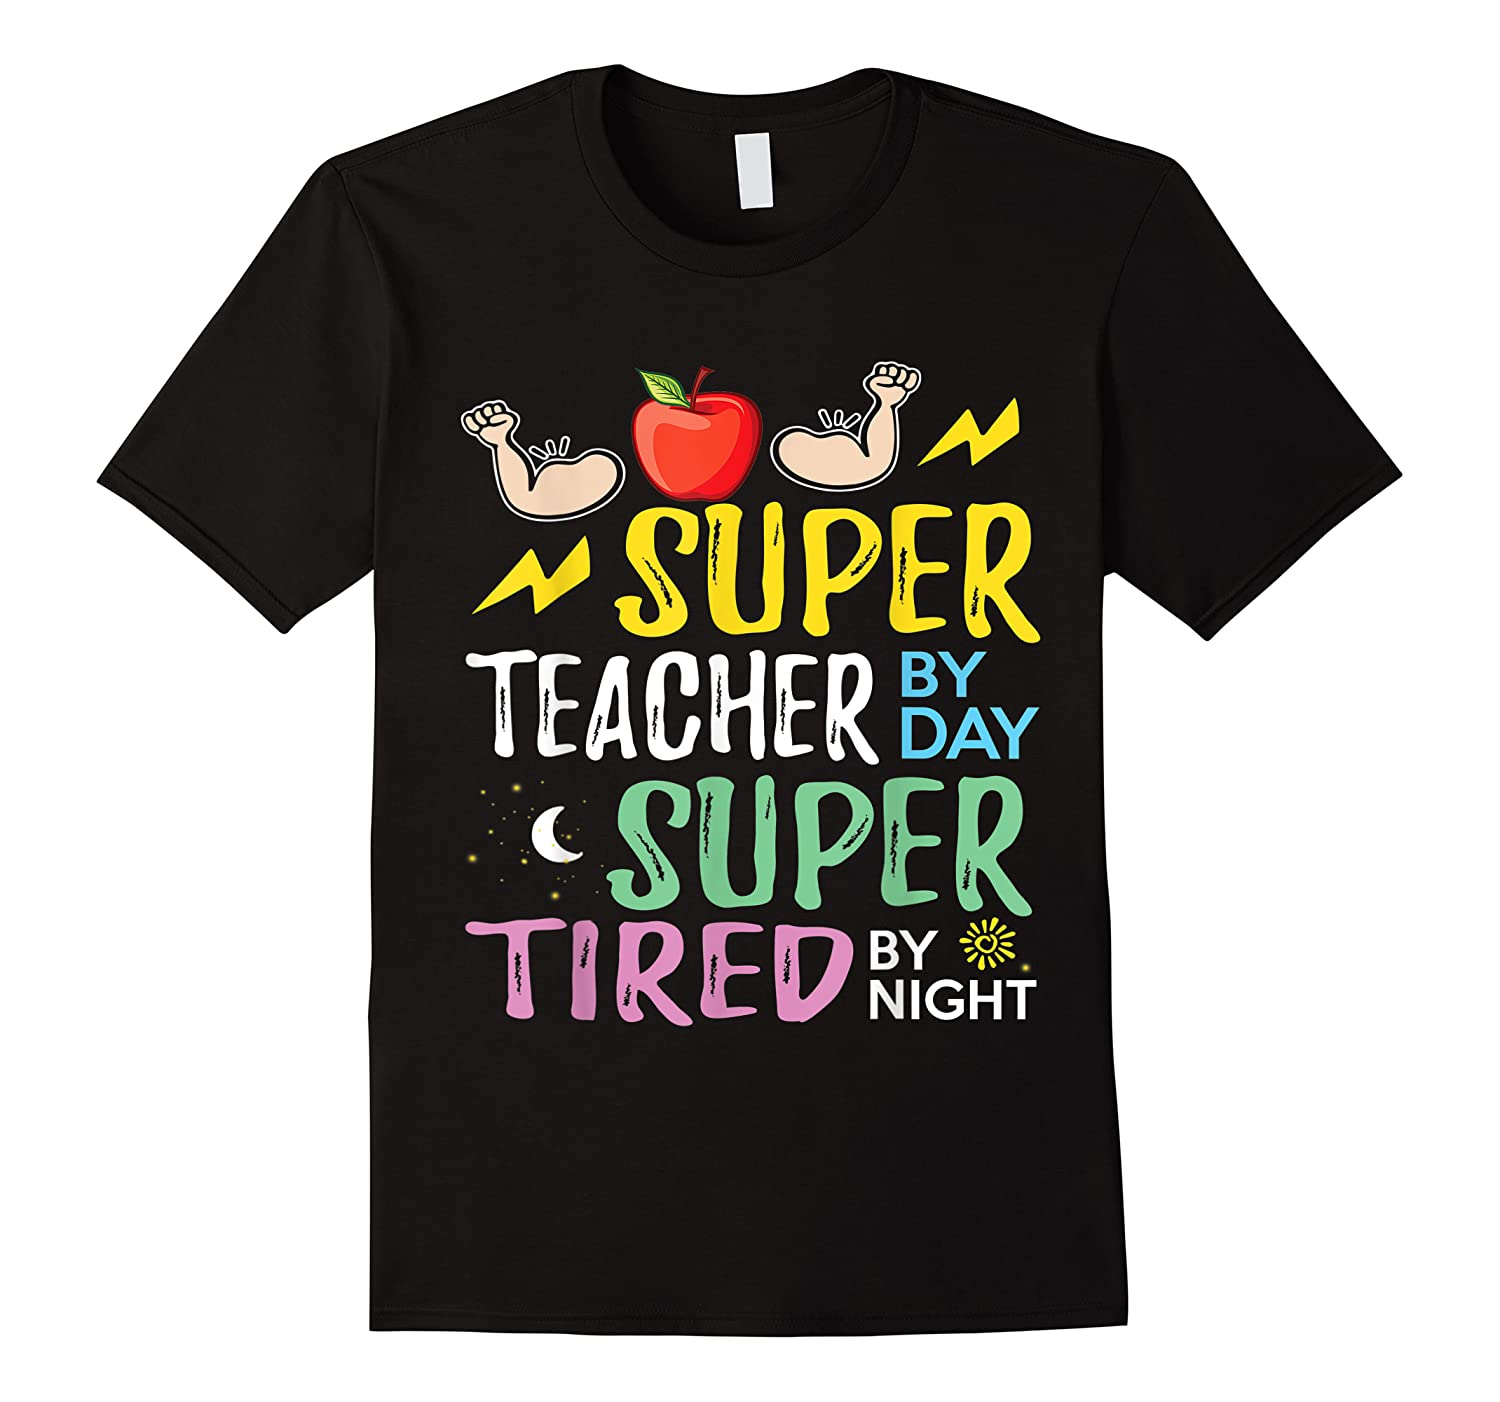 Super Tea By Day Super Tired By Night Cute Gift T-shirt